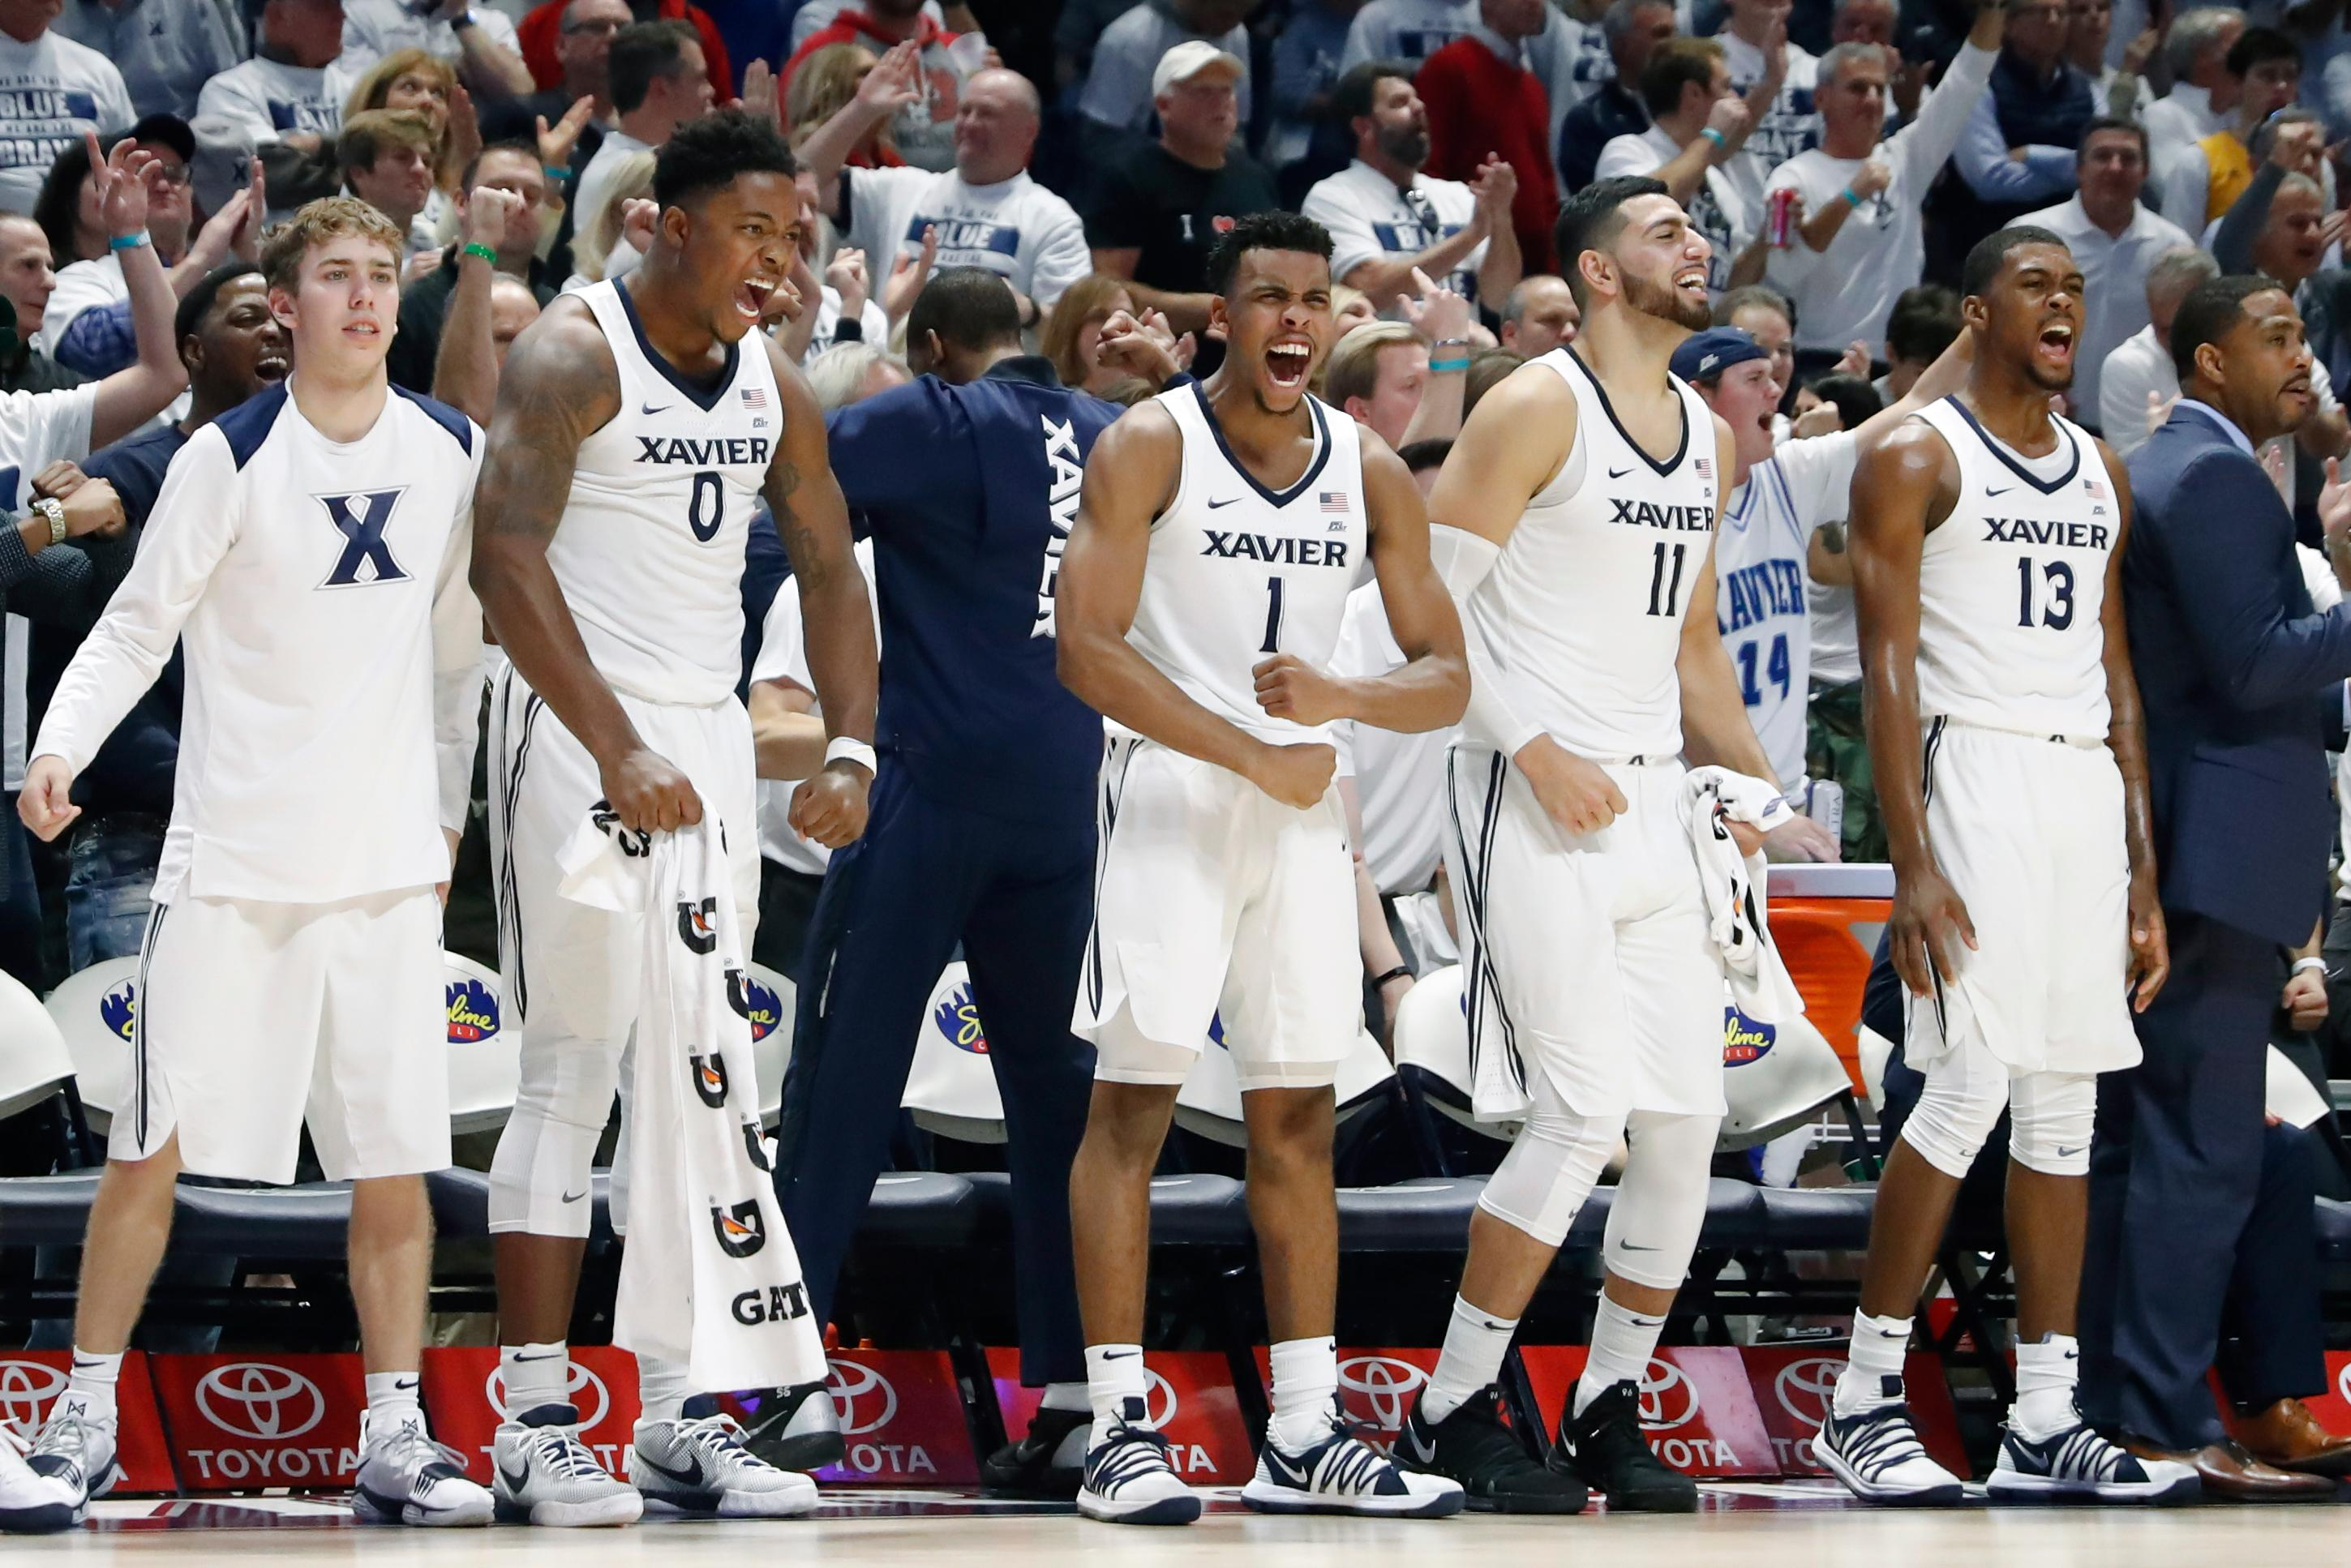 The Xavier bench reacts in the second half of an NCAA college basketball game against Cincinnati, Saturday, Dec. 2, 2017, in Cincinnati. Xavier won 89-76. (AP Photo/John Minchillo)